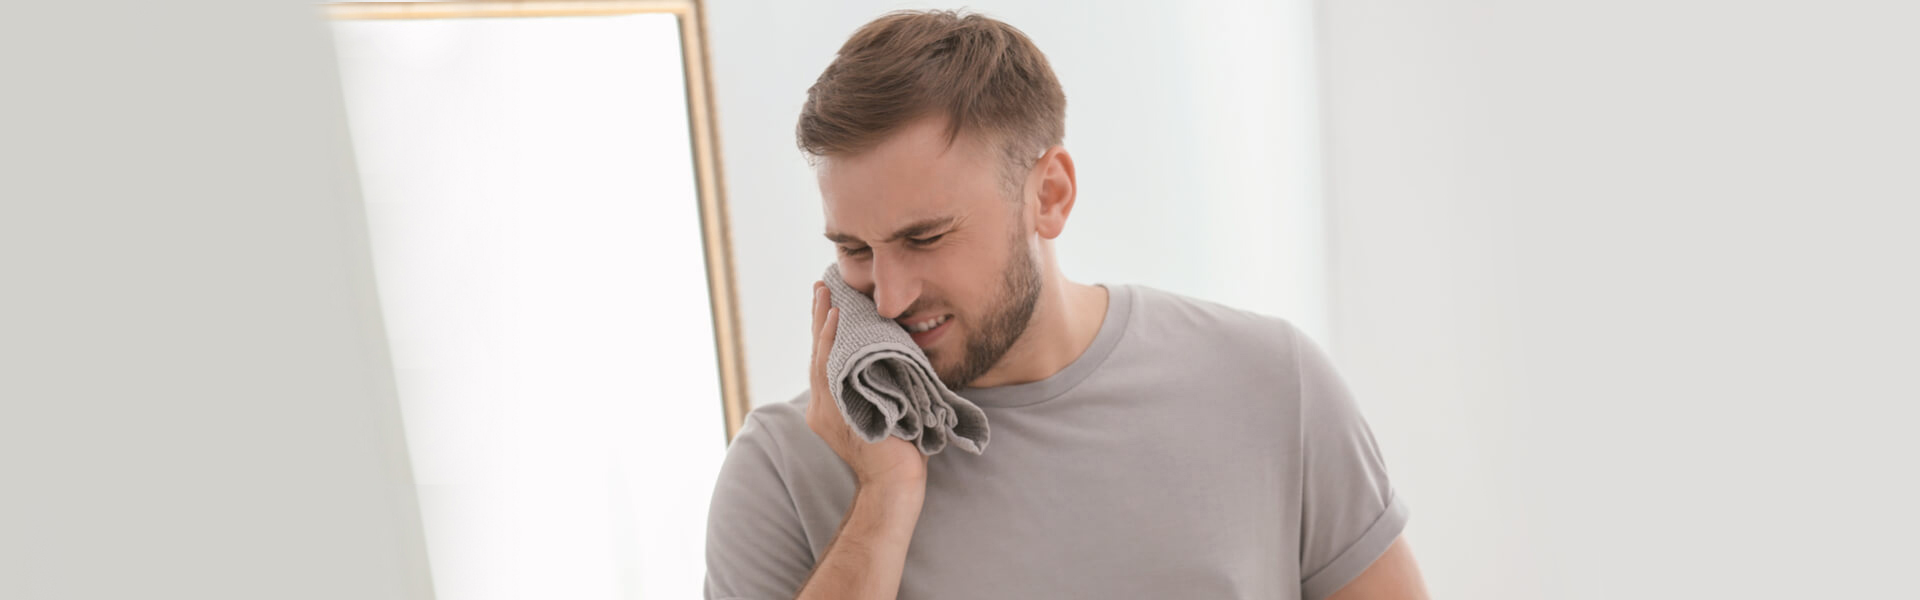 Signs You Need to Visit a TMJ Specialist in Encinitas